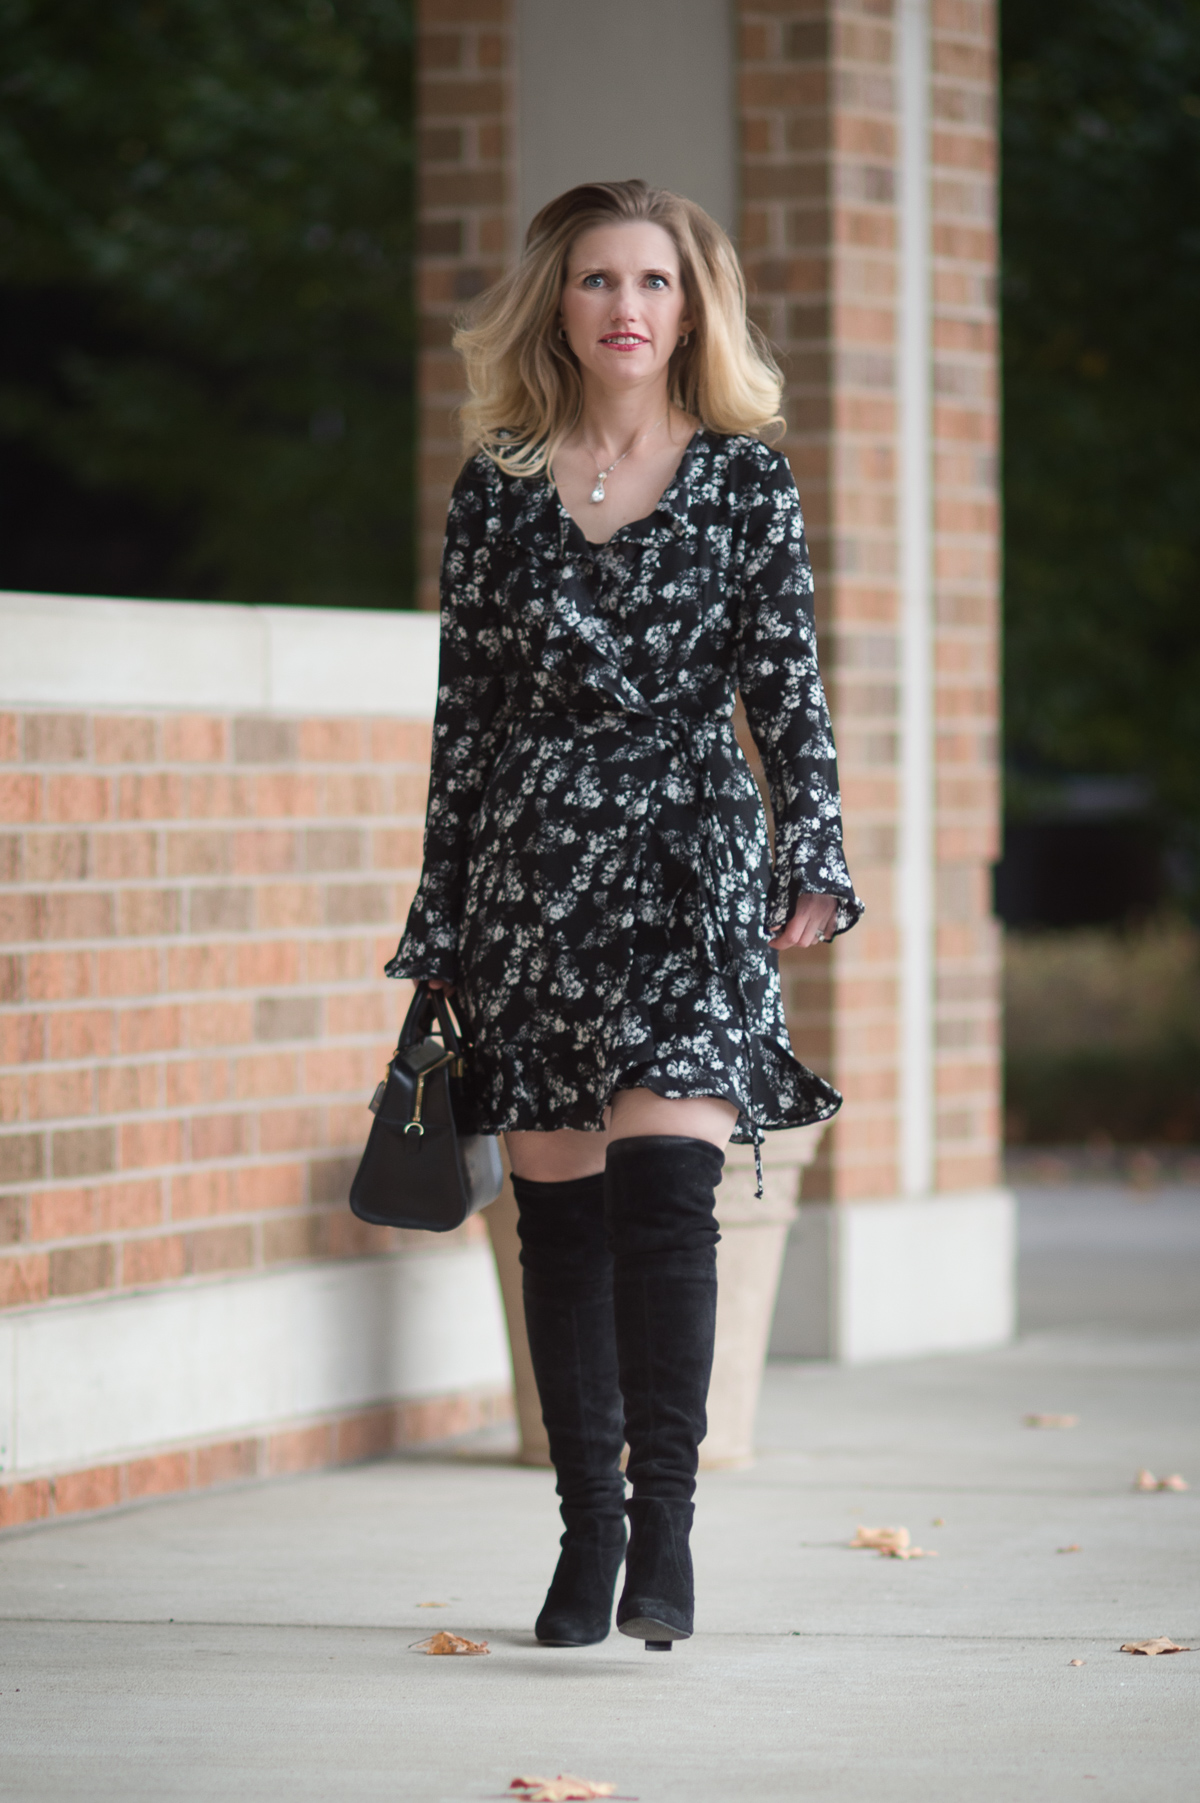 8 Inspiring Ways to Wear Dresses in the Winter and Stay